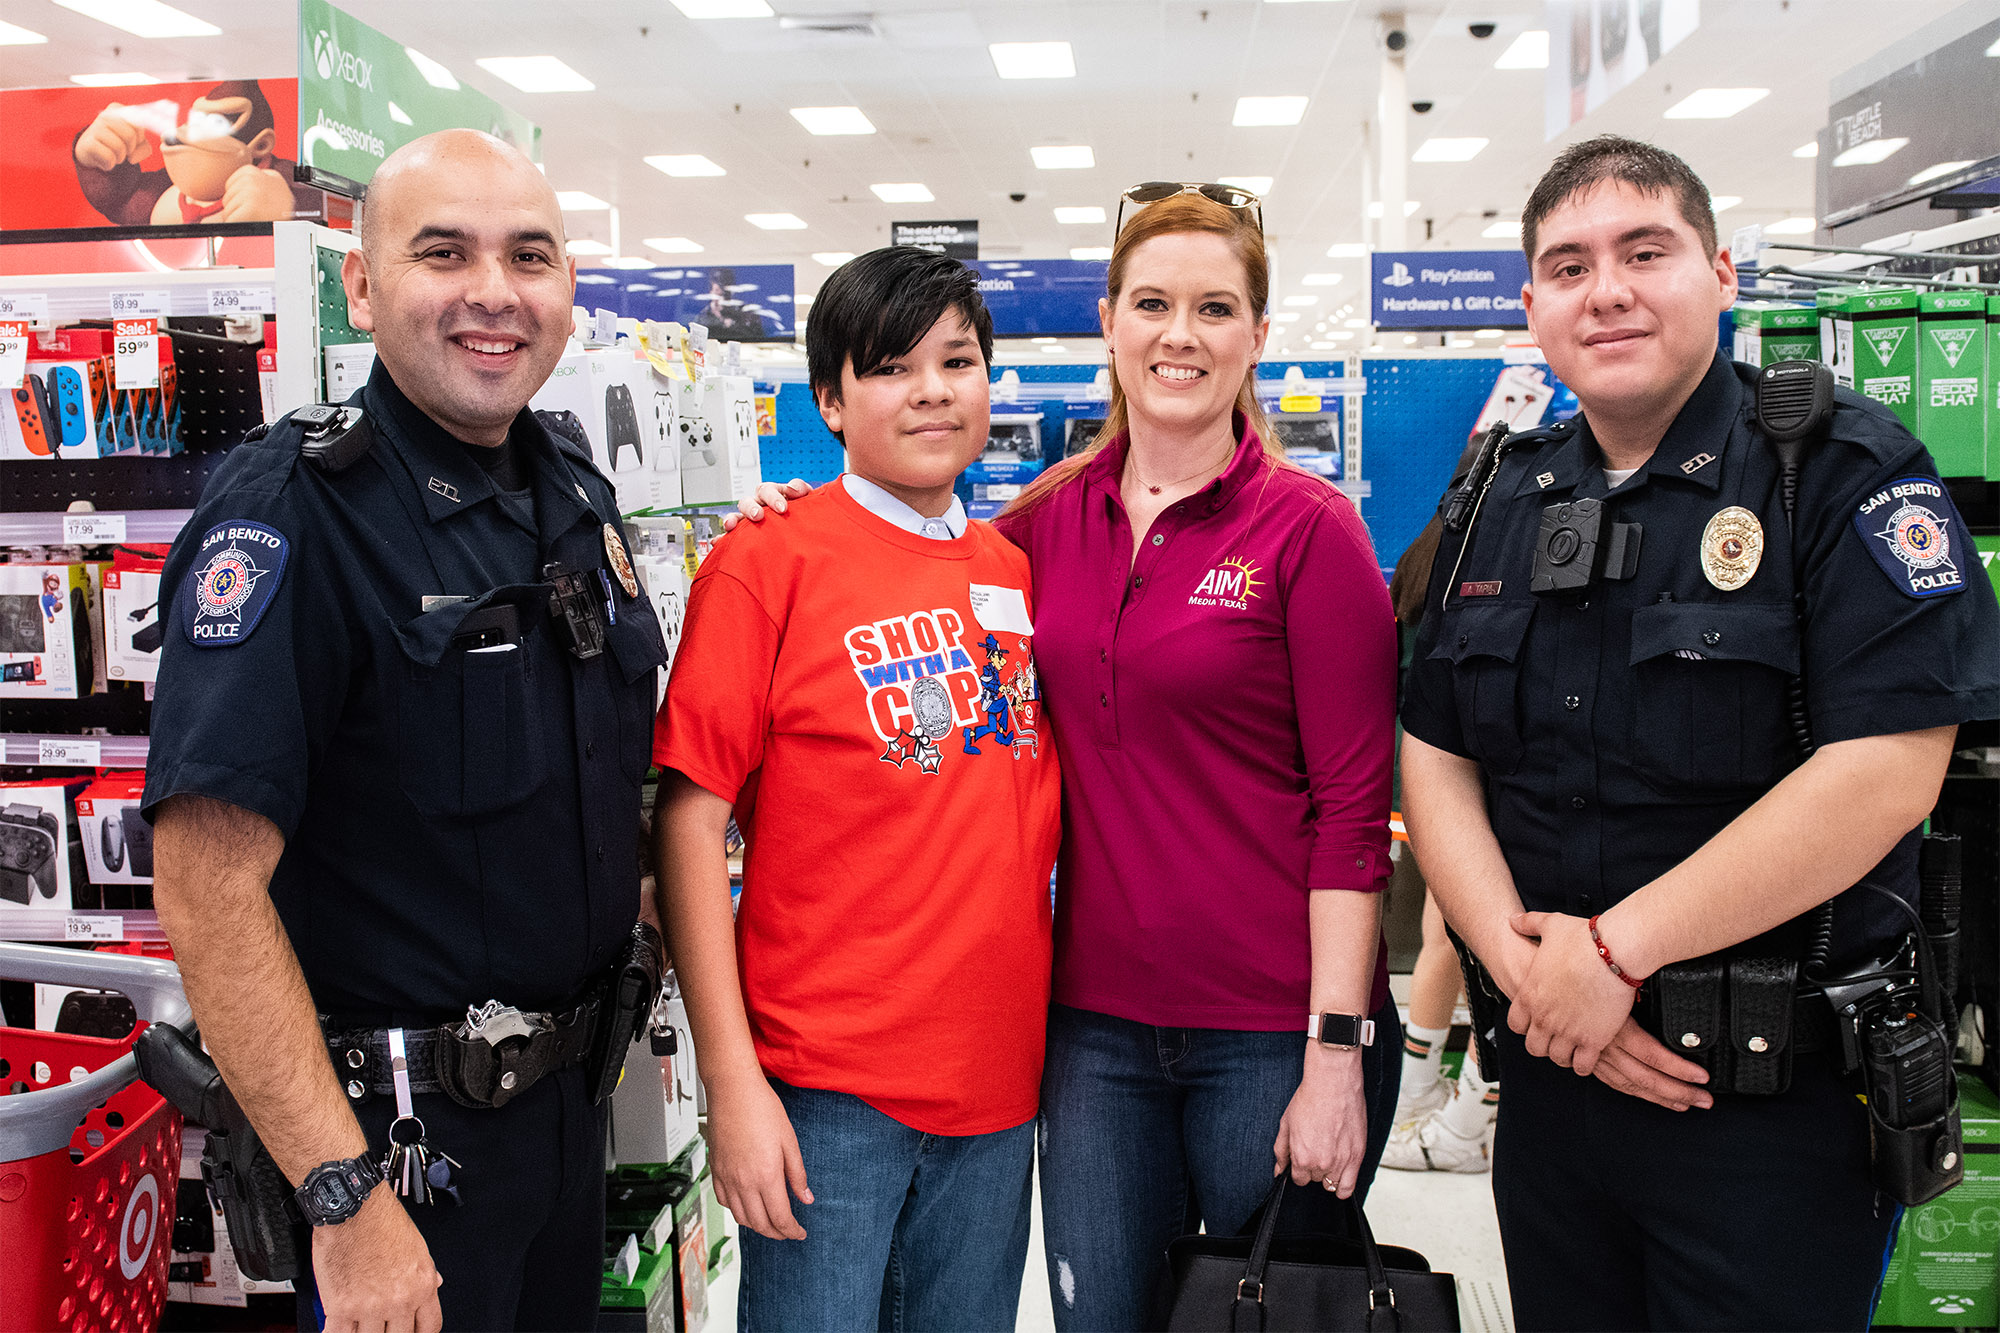 HPD celebrates the season of giving with fourth annual Shop With a Cop